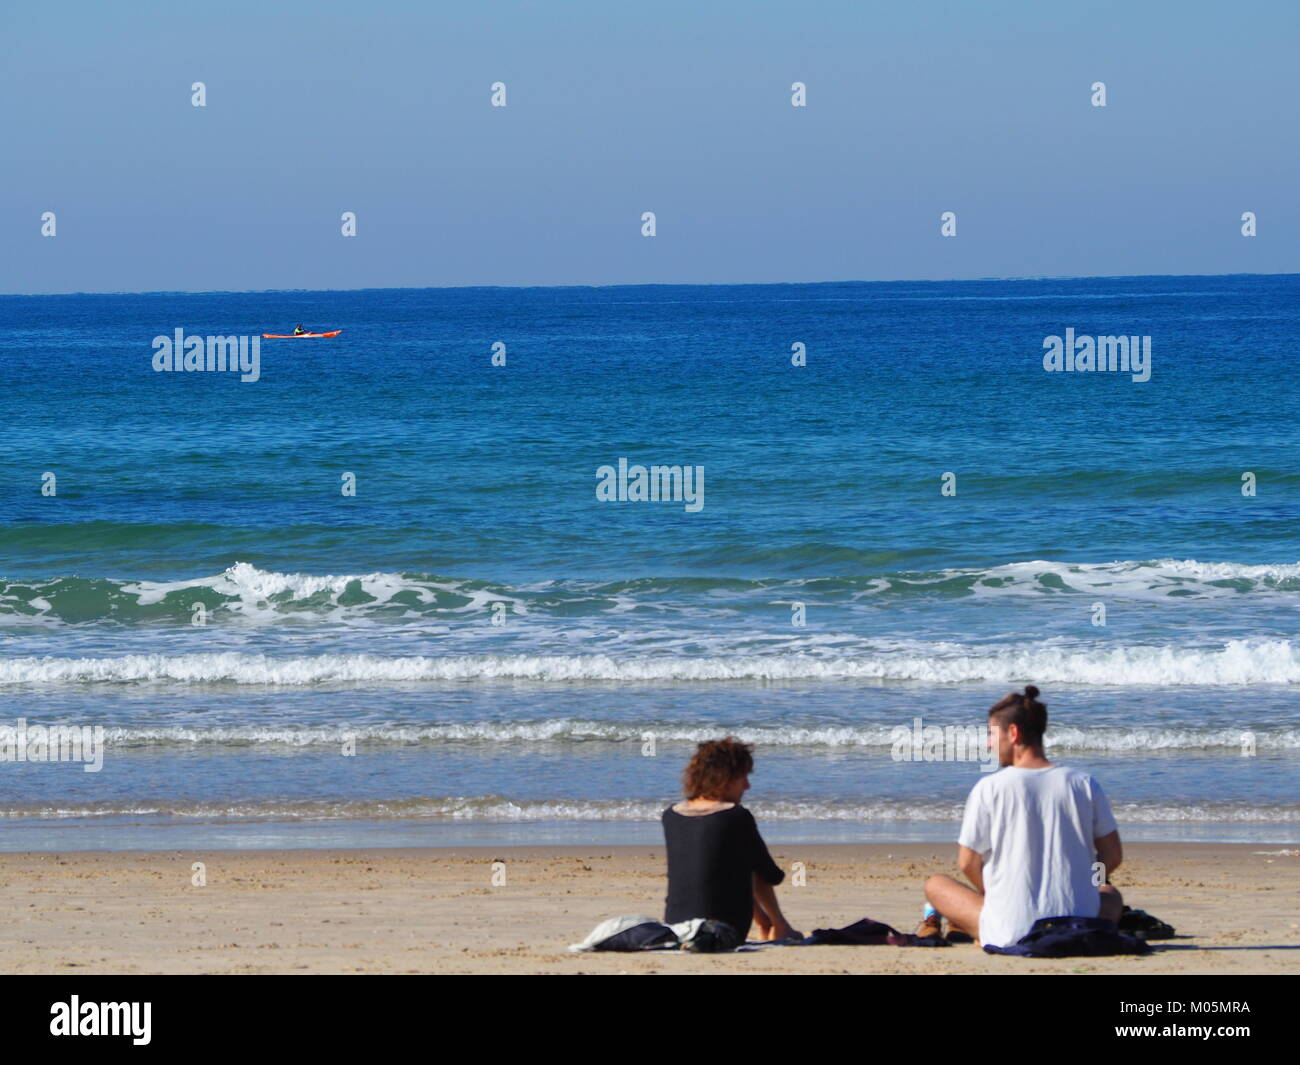 two Friends sitting on the beach sand on a perfect clear day and